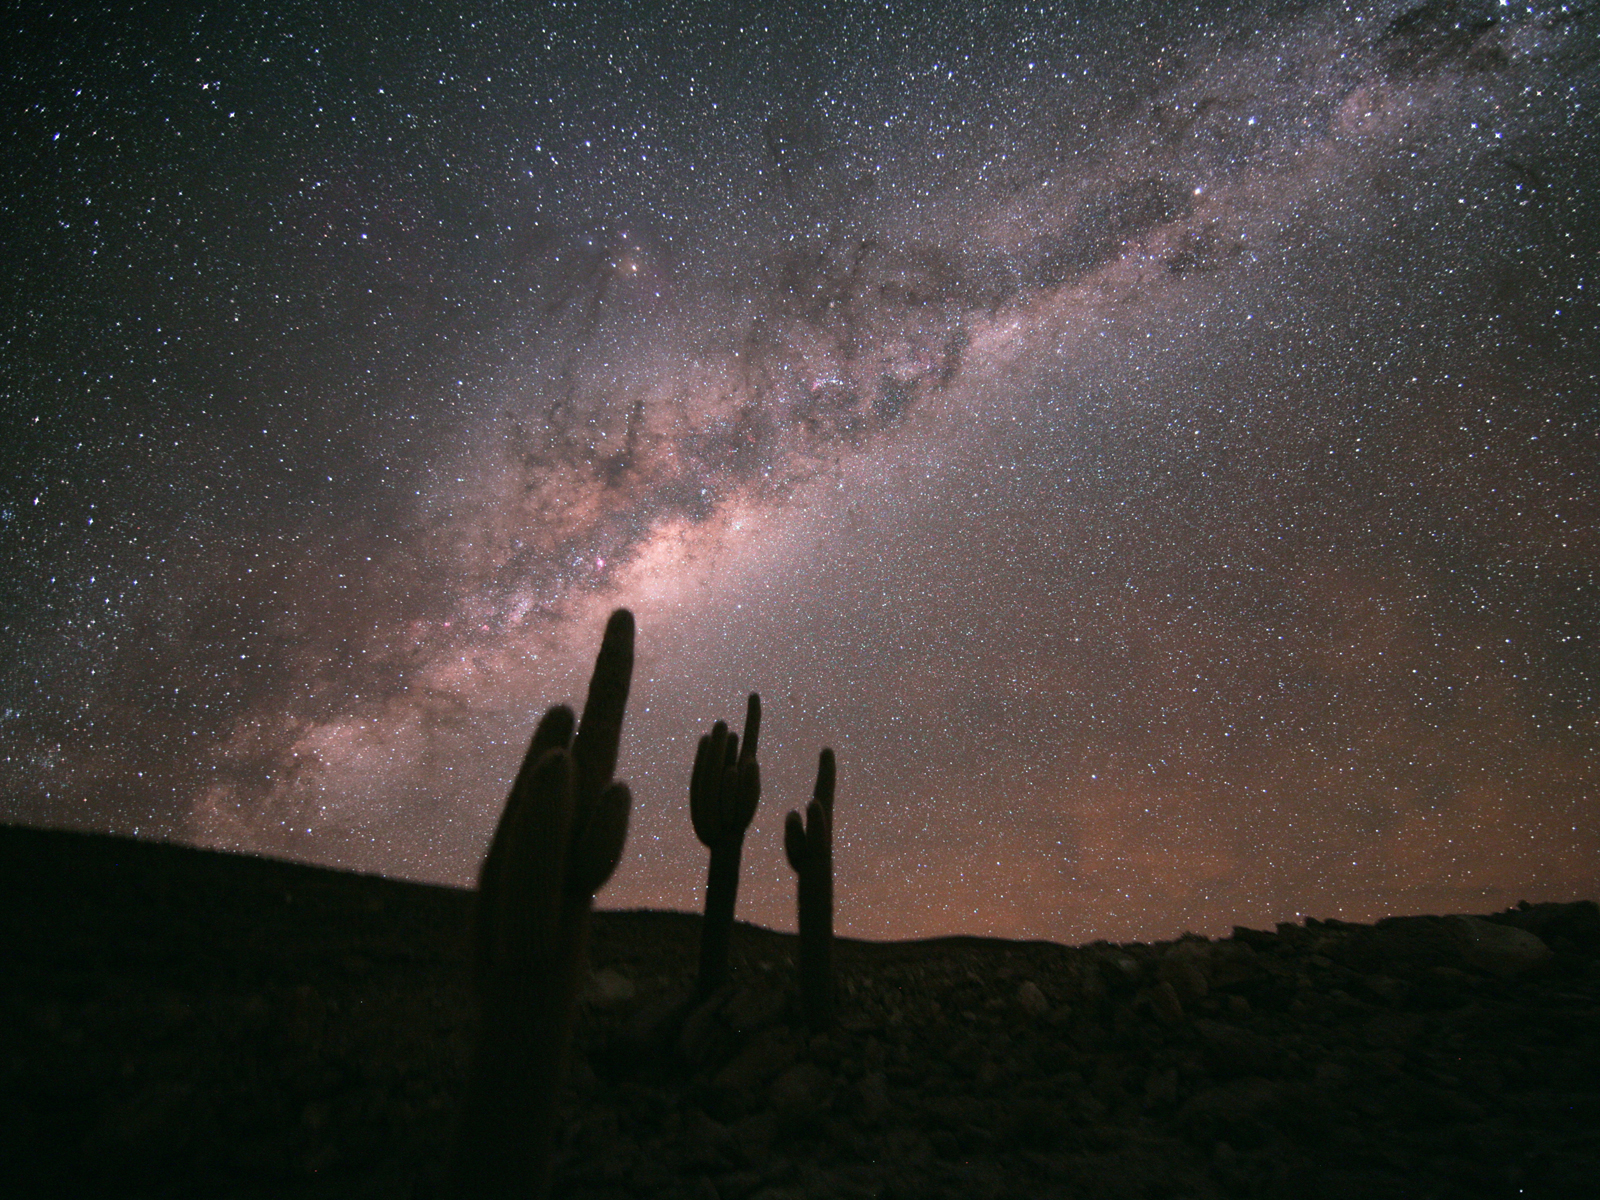 The Milky Way is seen in all its glory, as well as, in the lower right, the Large Magellanic Cloud.